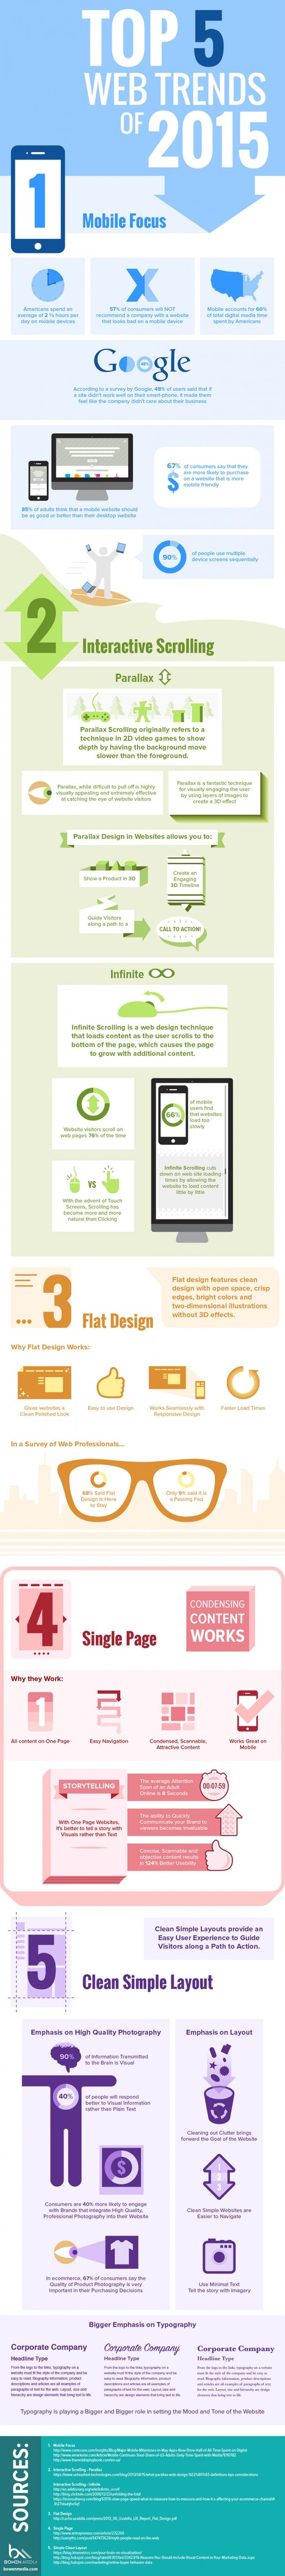 Top 5 Web Design Trends For 2015 | Infographic | Online World | Scoop.it